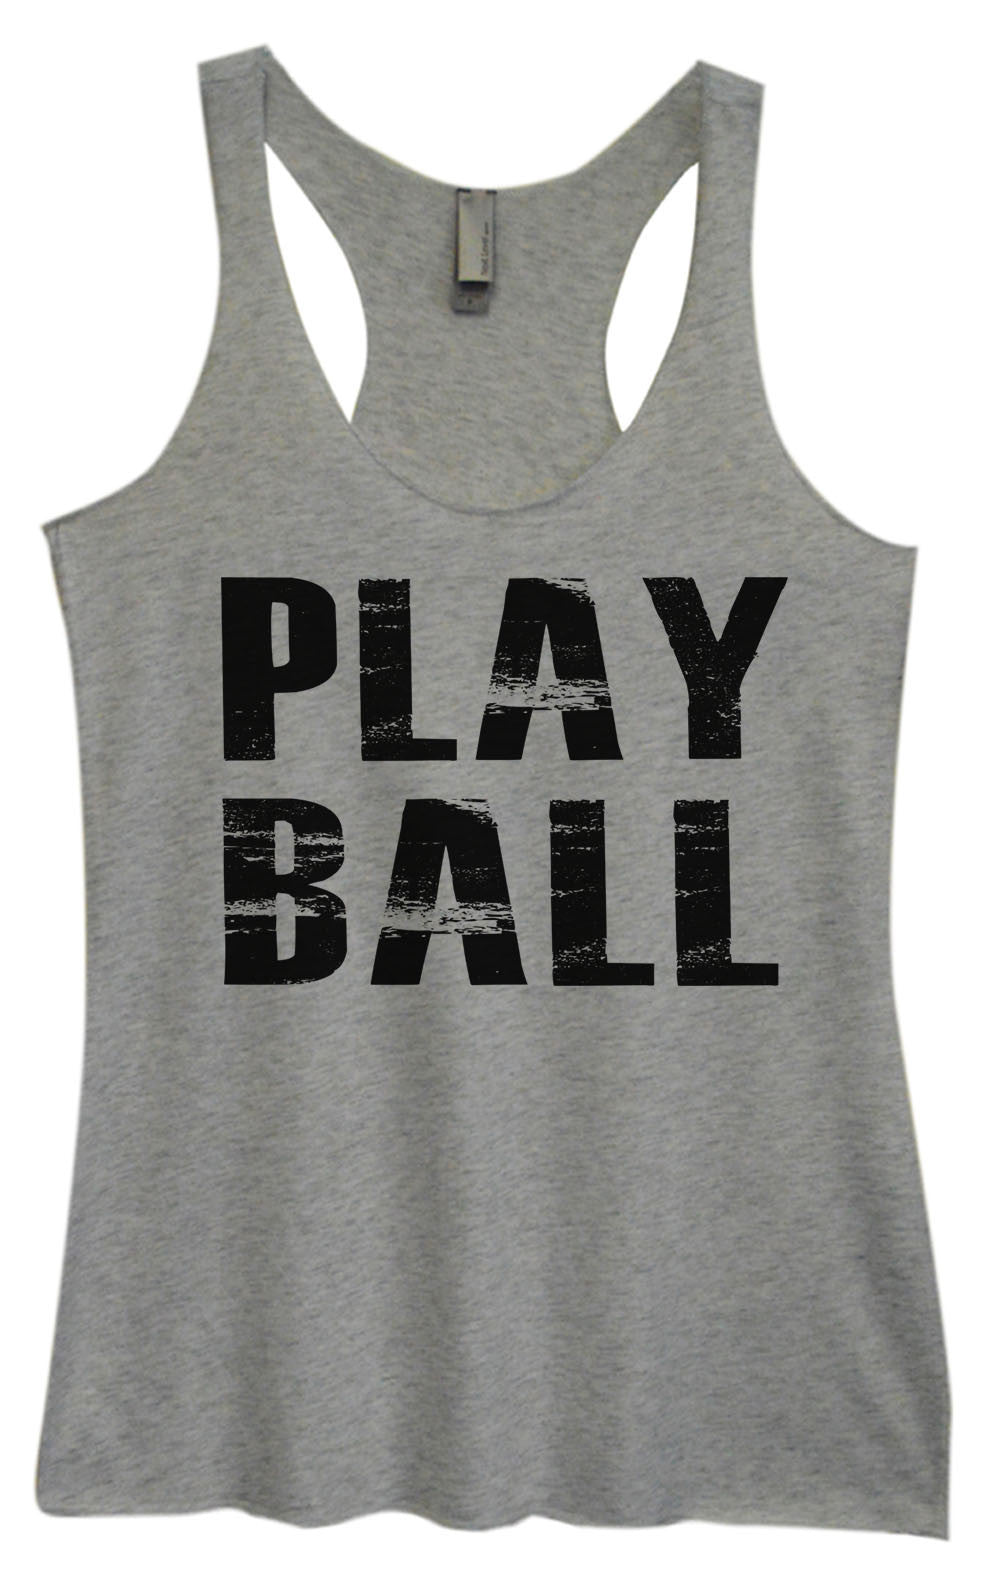 Womens Fashion Triblend Tank Top - Play Ball - Tri-992 - Funny Shirts Tank Tops Burnouts and Triblends  - 2